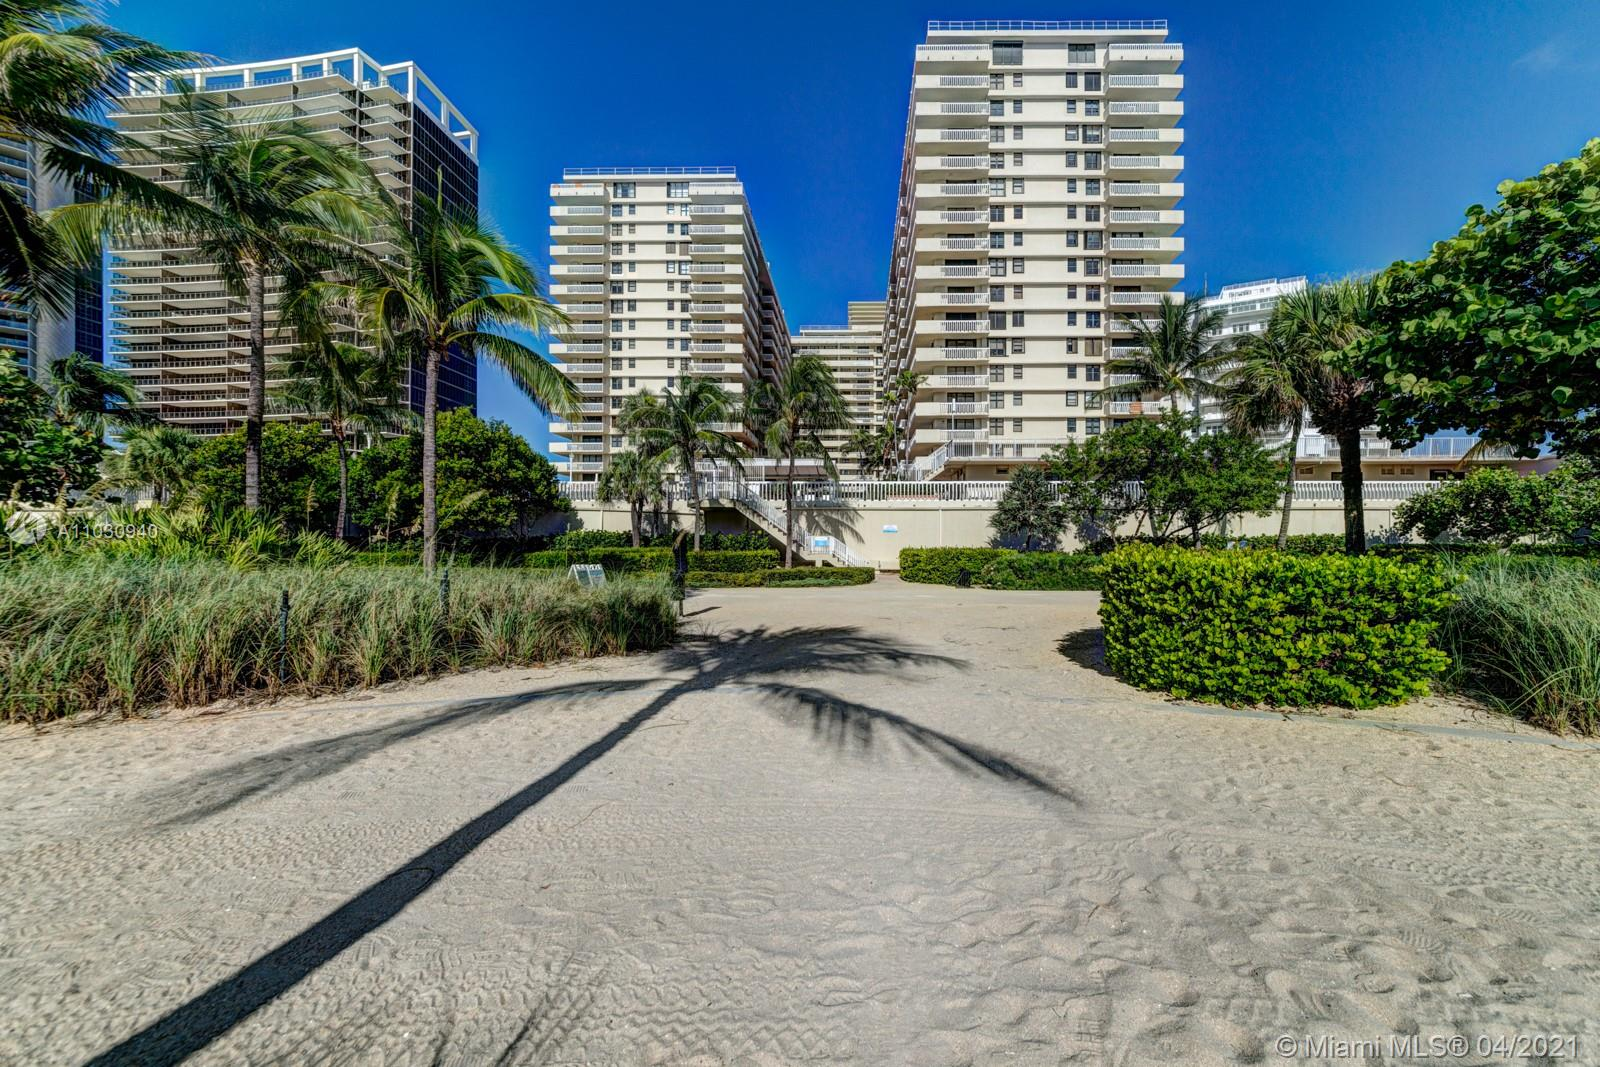 Photo of 9801 Collins Ave #14N, Bal Harbour, Florida, 33154 - Exterior Front